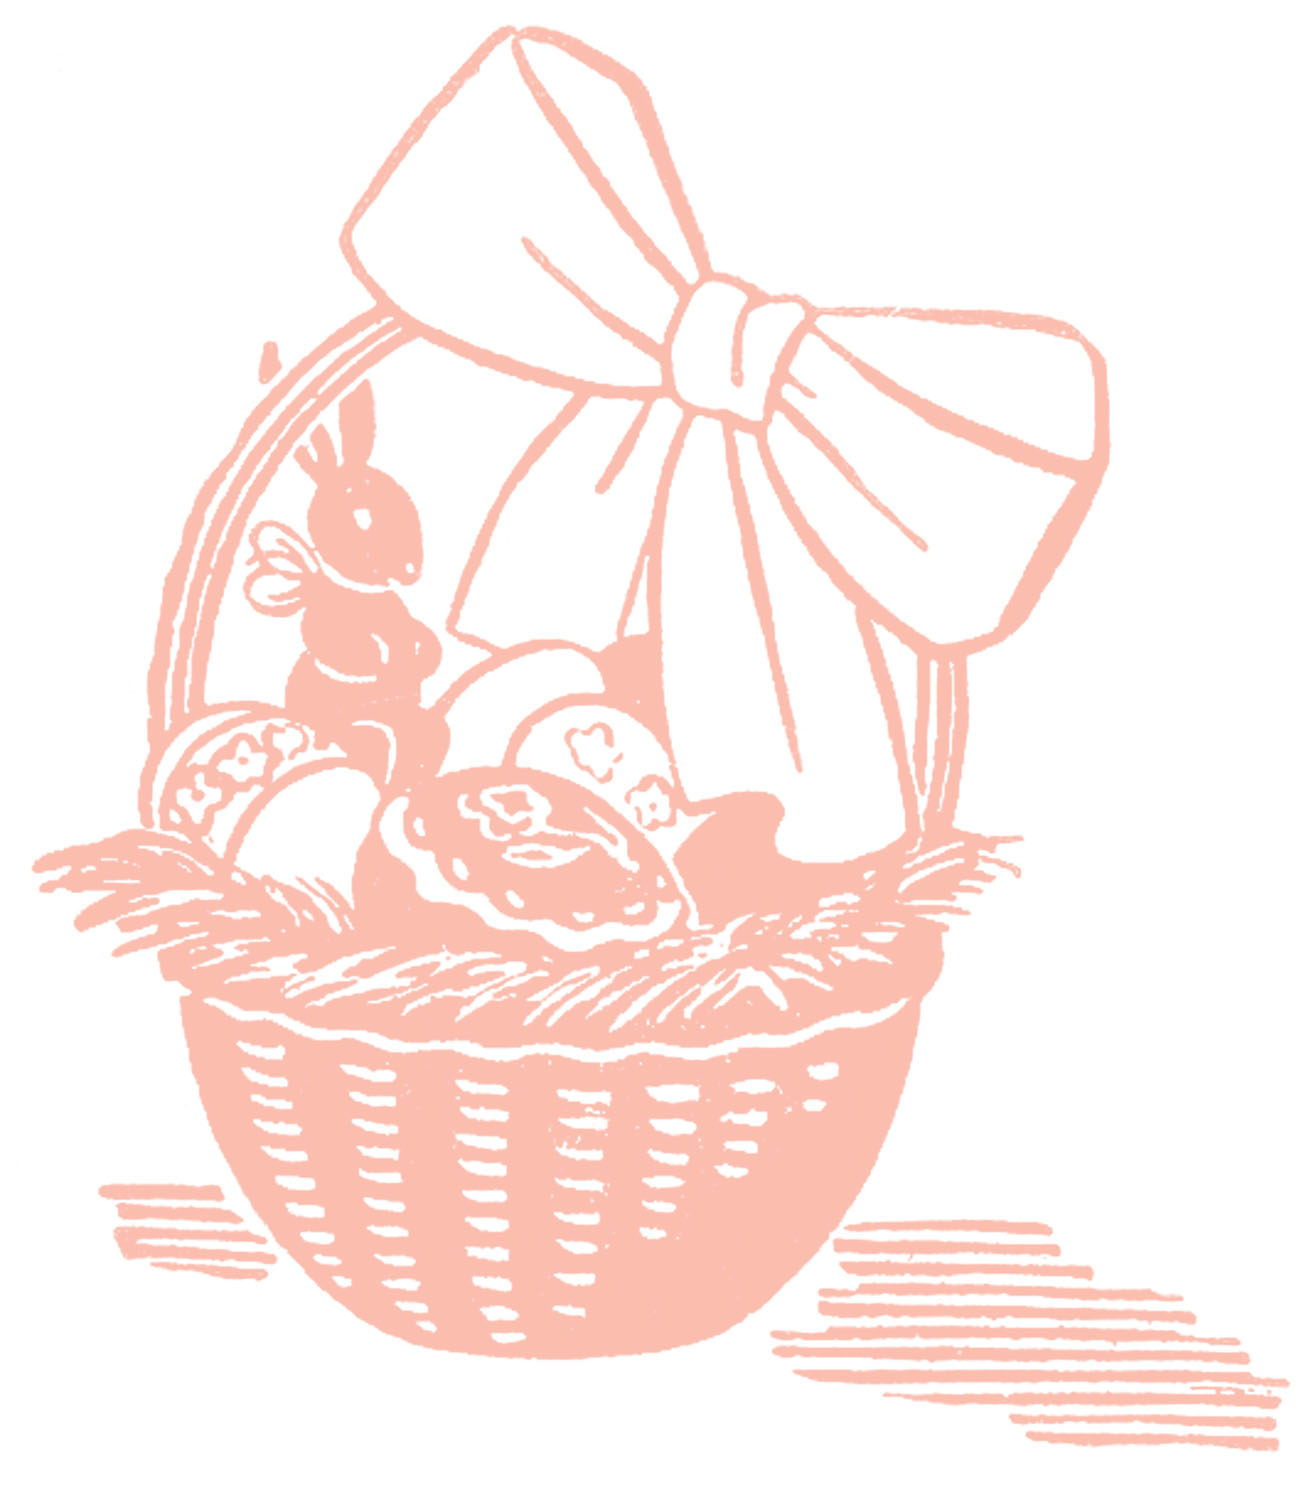 Easter basket silhouette clipart picture royalty free Easter basket silhouette clipart - ClipartFest picture royalty free